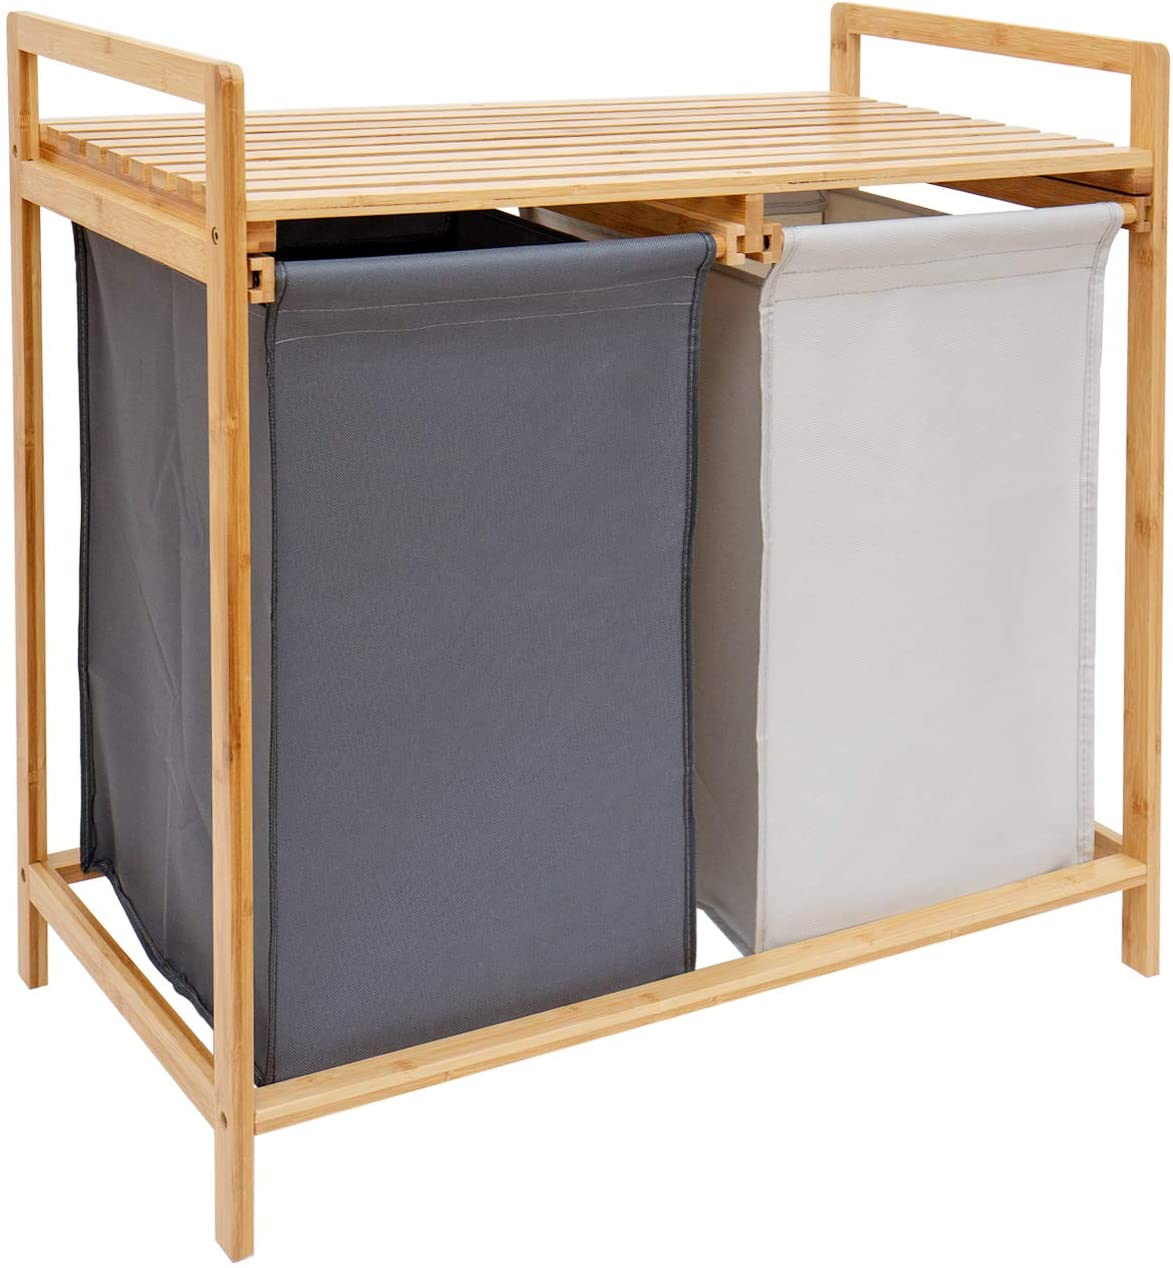 COMELLOW Bamboo Laundry Hamper and Shelf, 2 Sections Laundry Basket with Removable Liner, Dual Compartments Laundry Organizer and Storage, Wooden Laundry Sorter with Sliding Handles